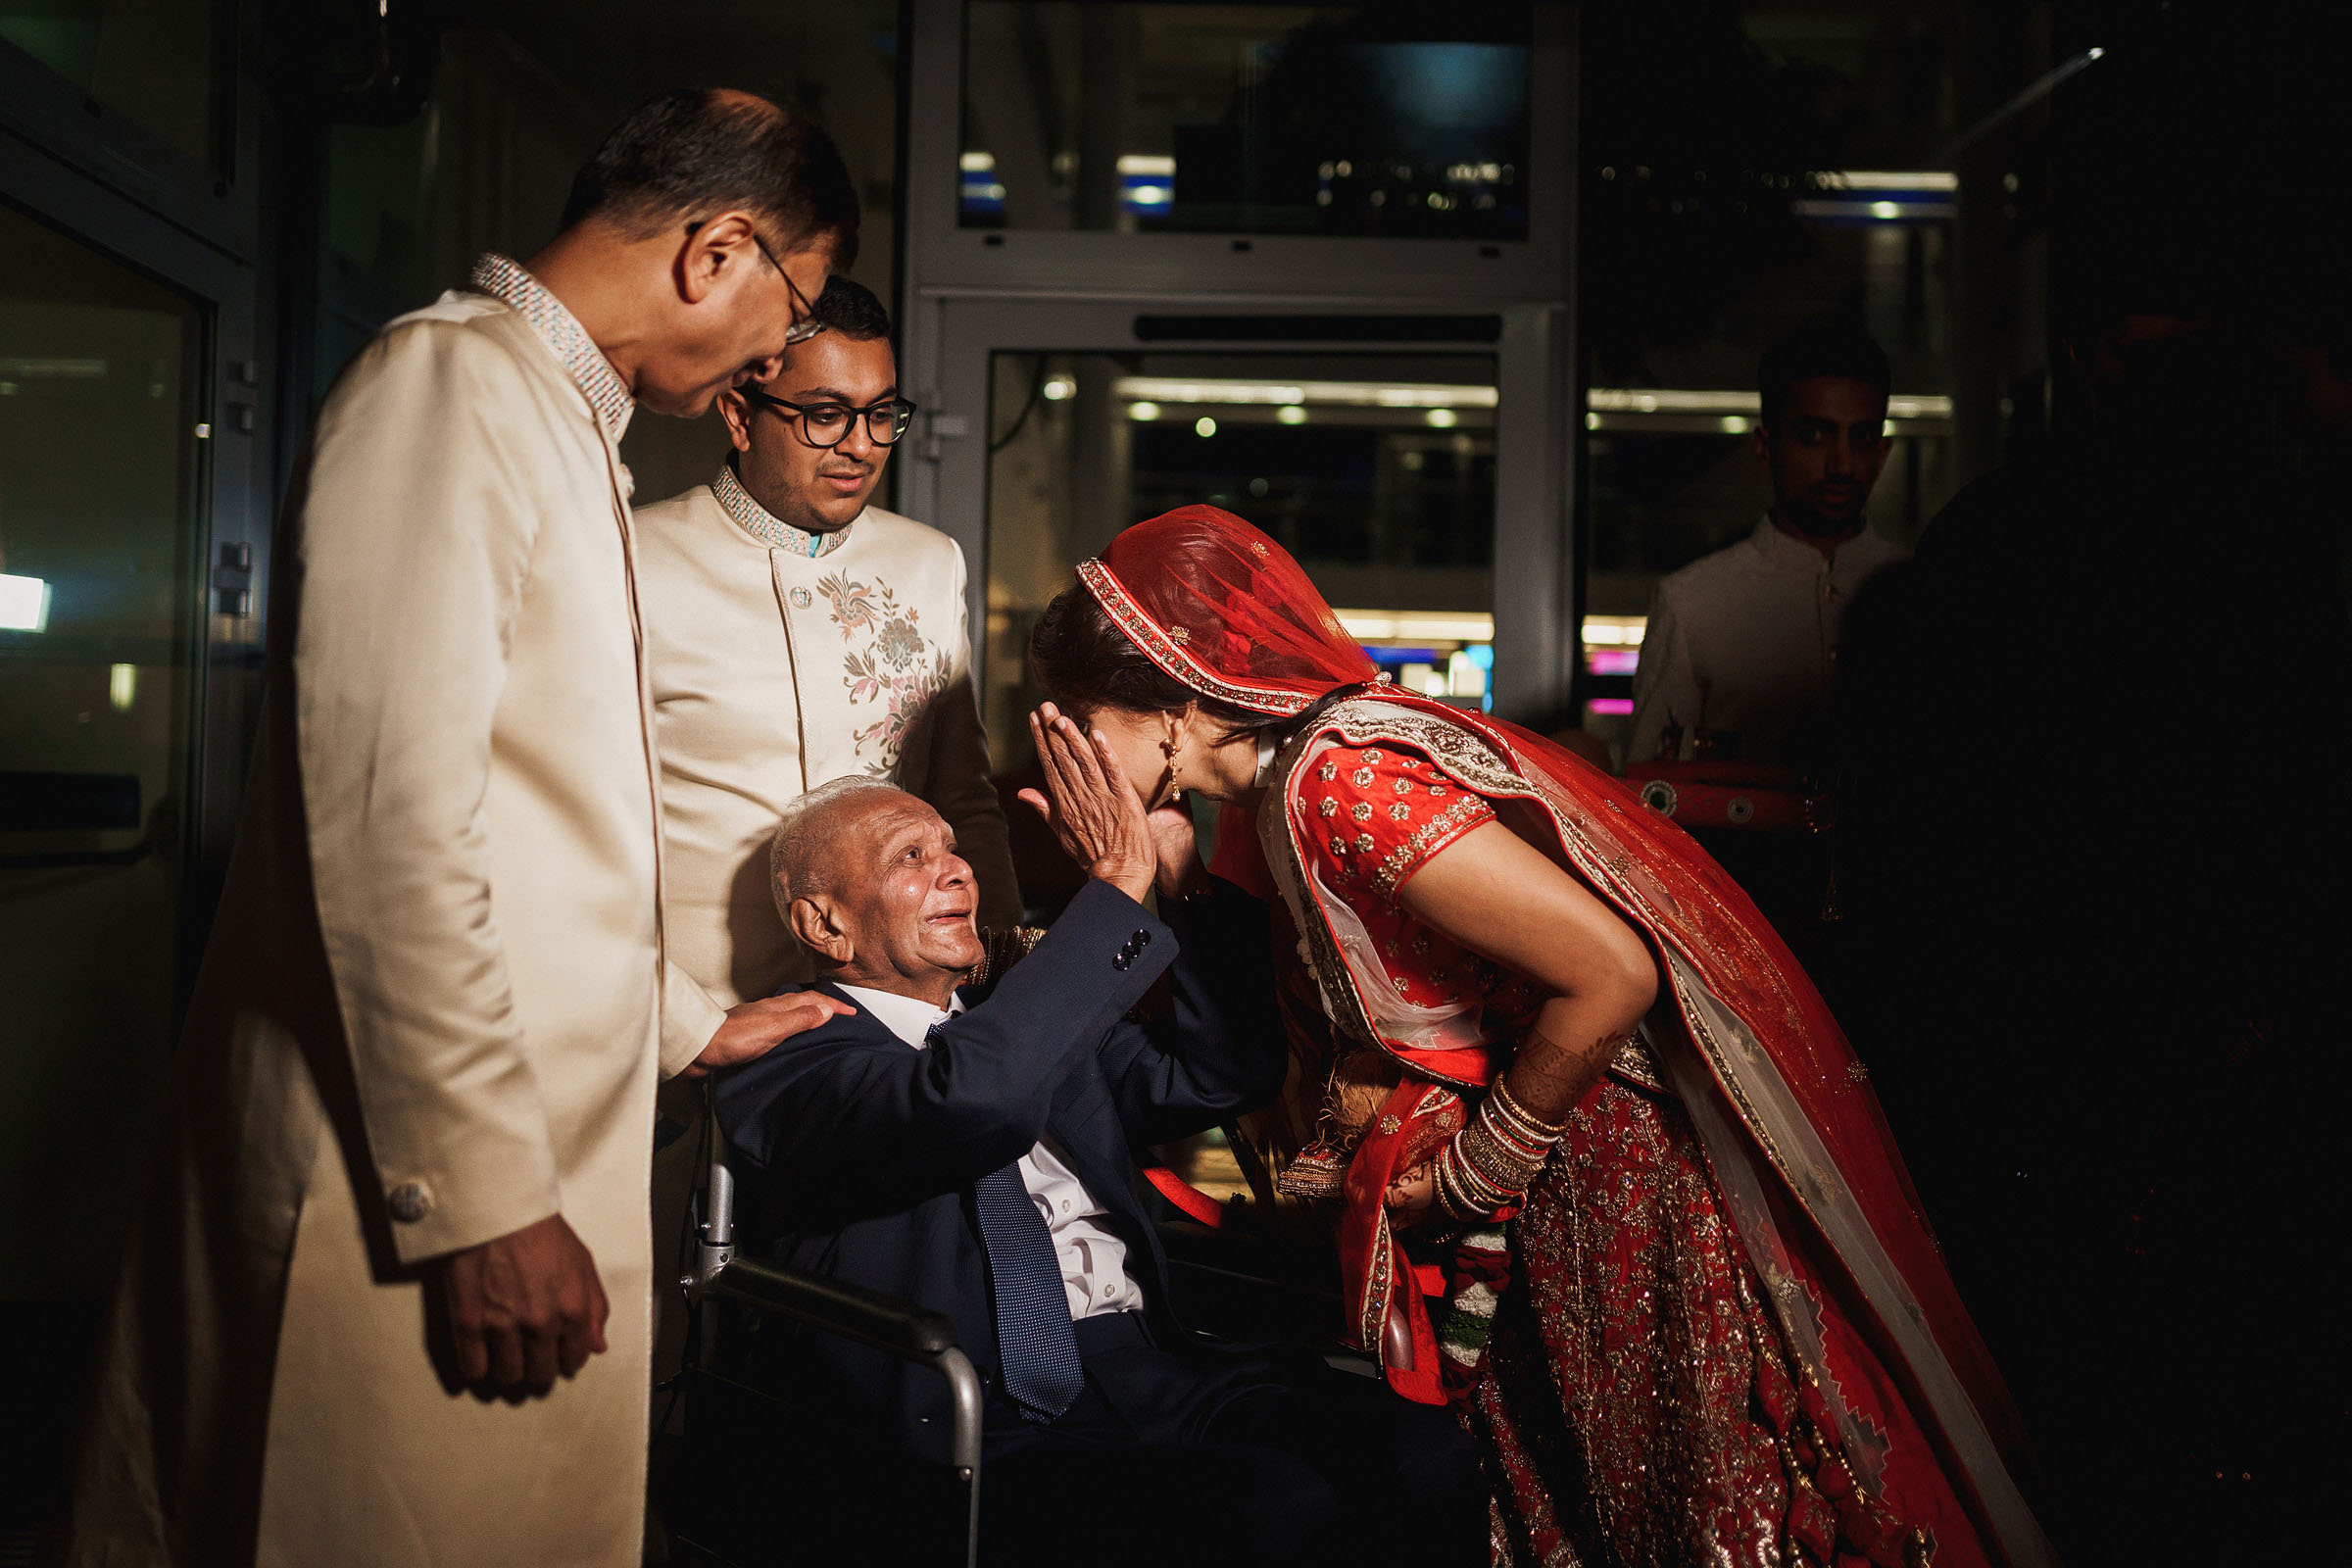 Touching portrait of grandfather and bride - Photo by F5 Photography